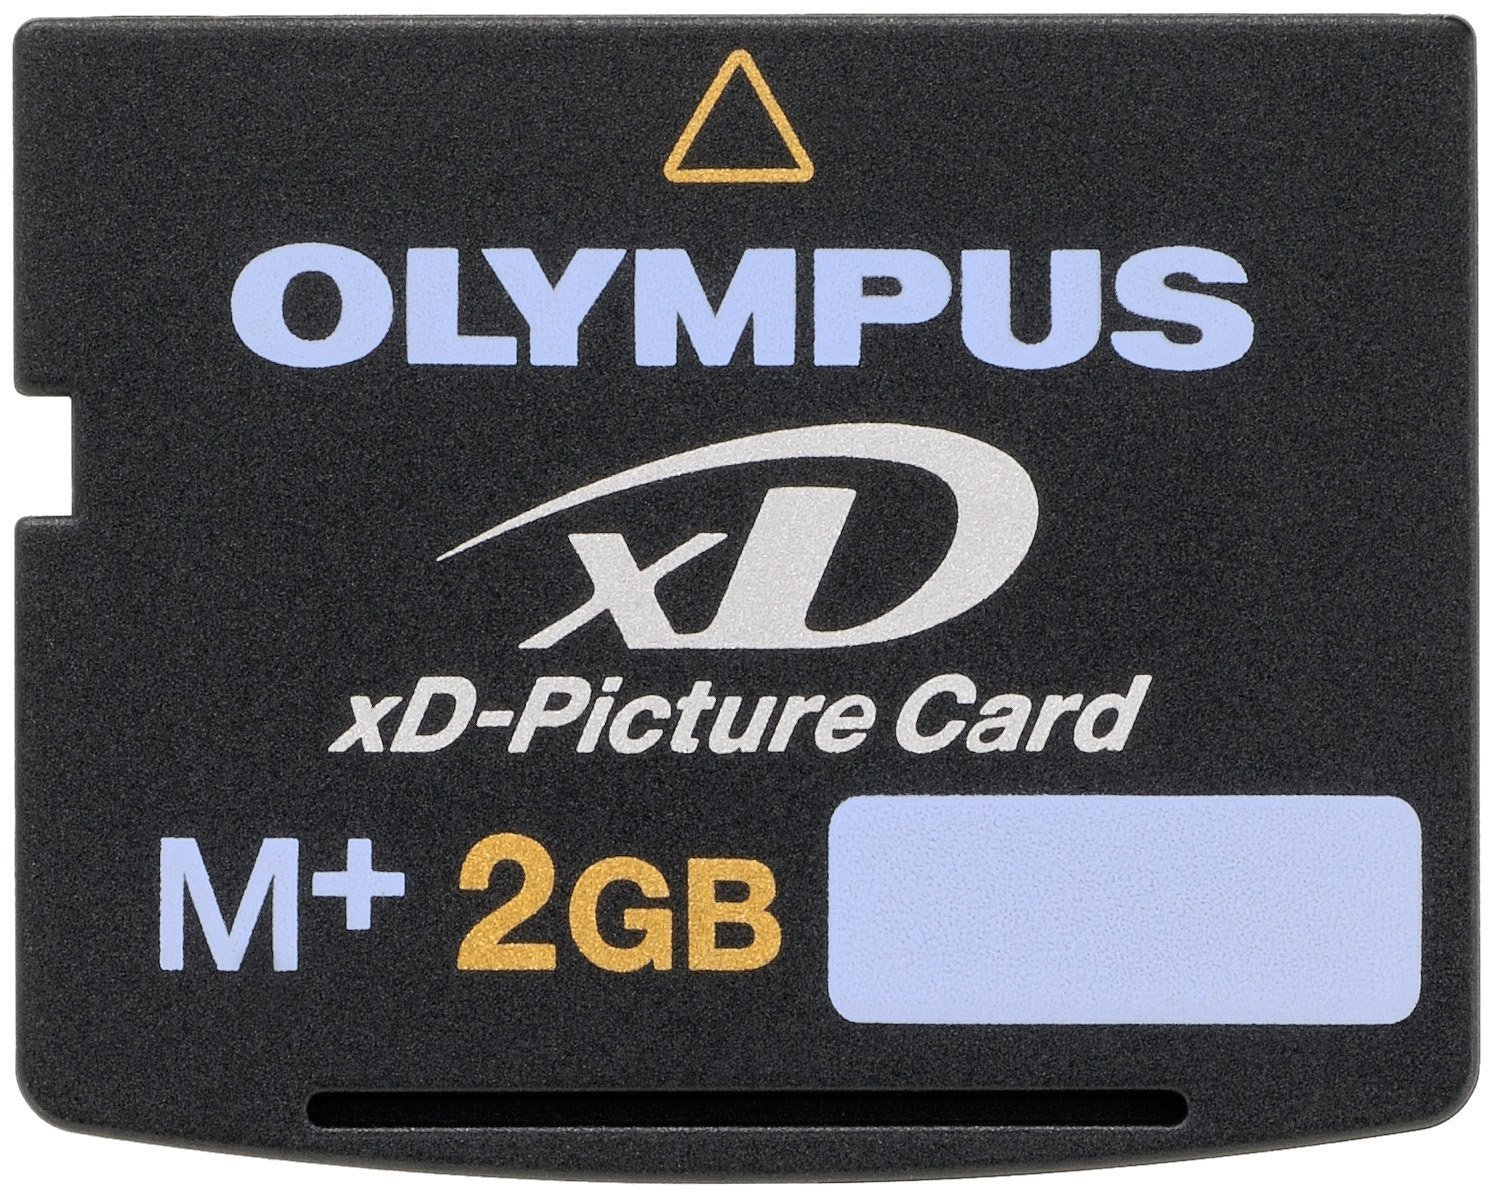 Olympus xD-Picture Card M+ 2 GB by Olympus